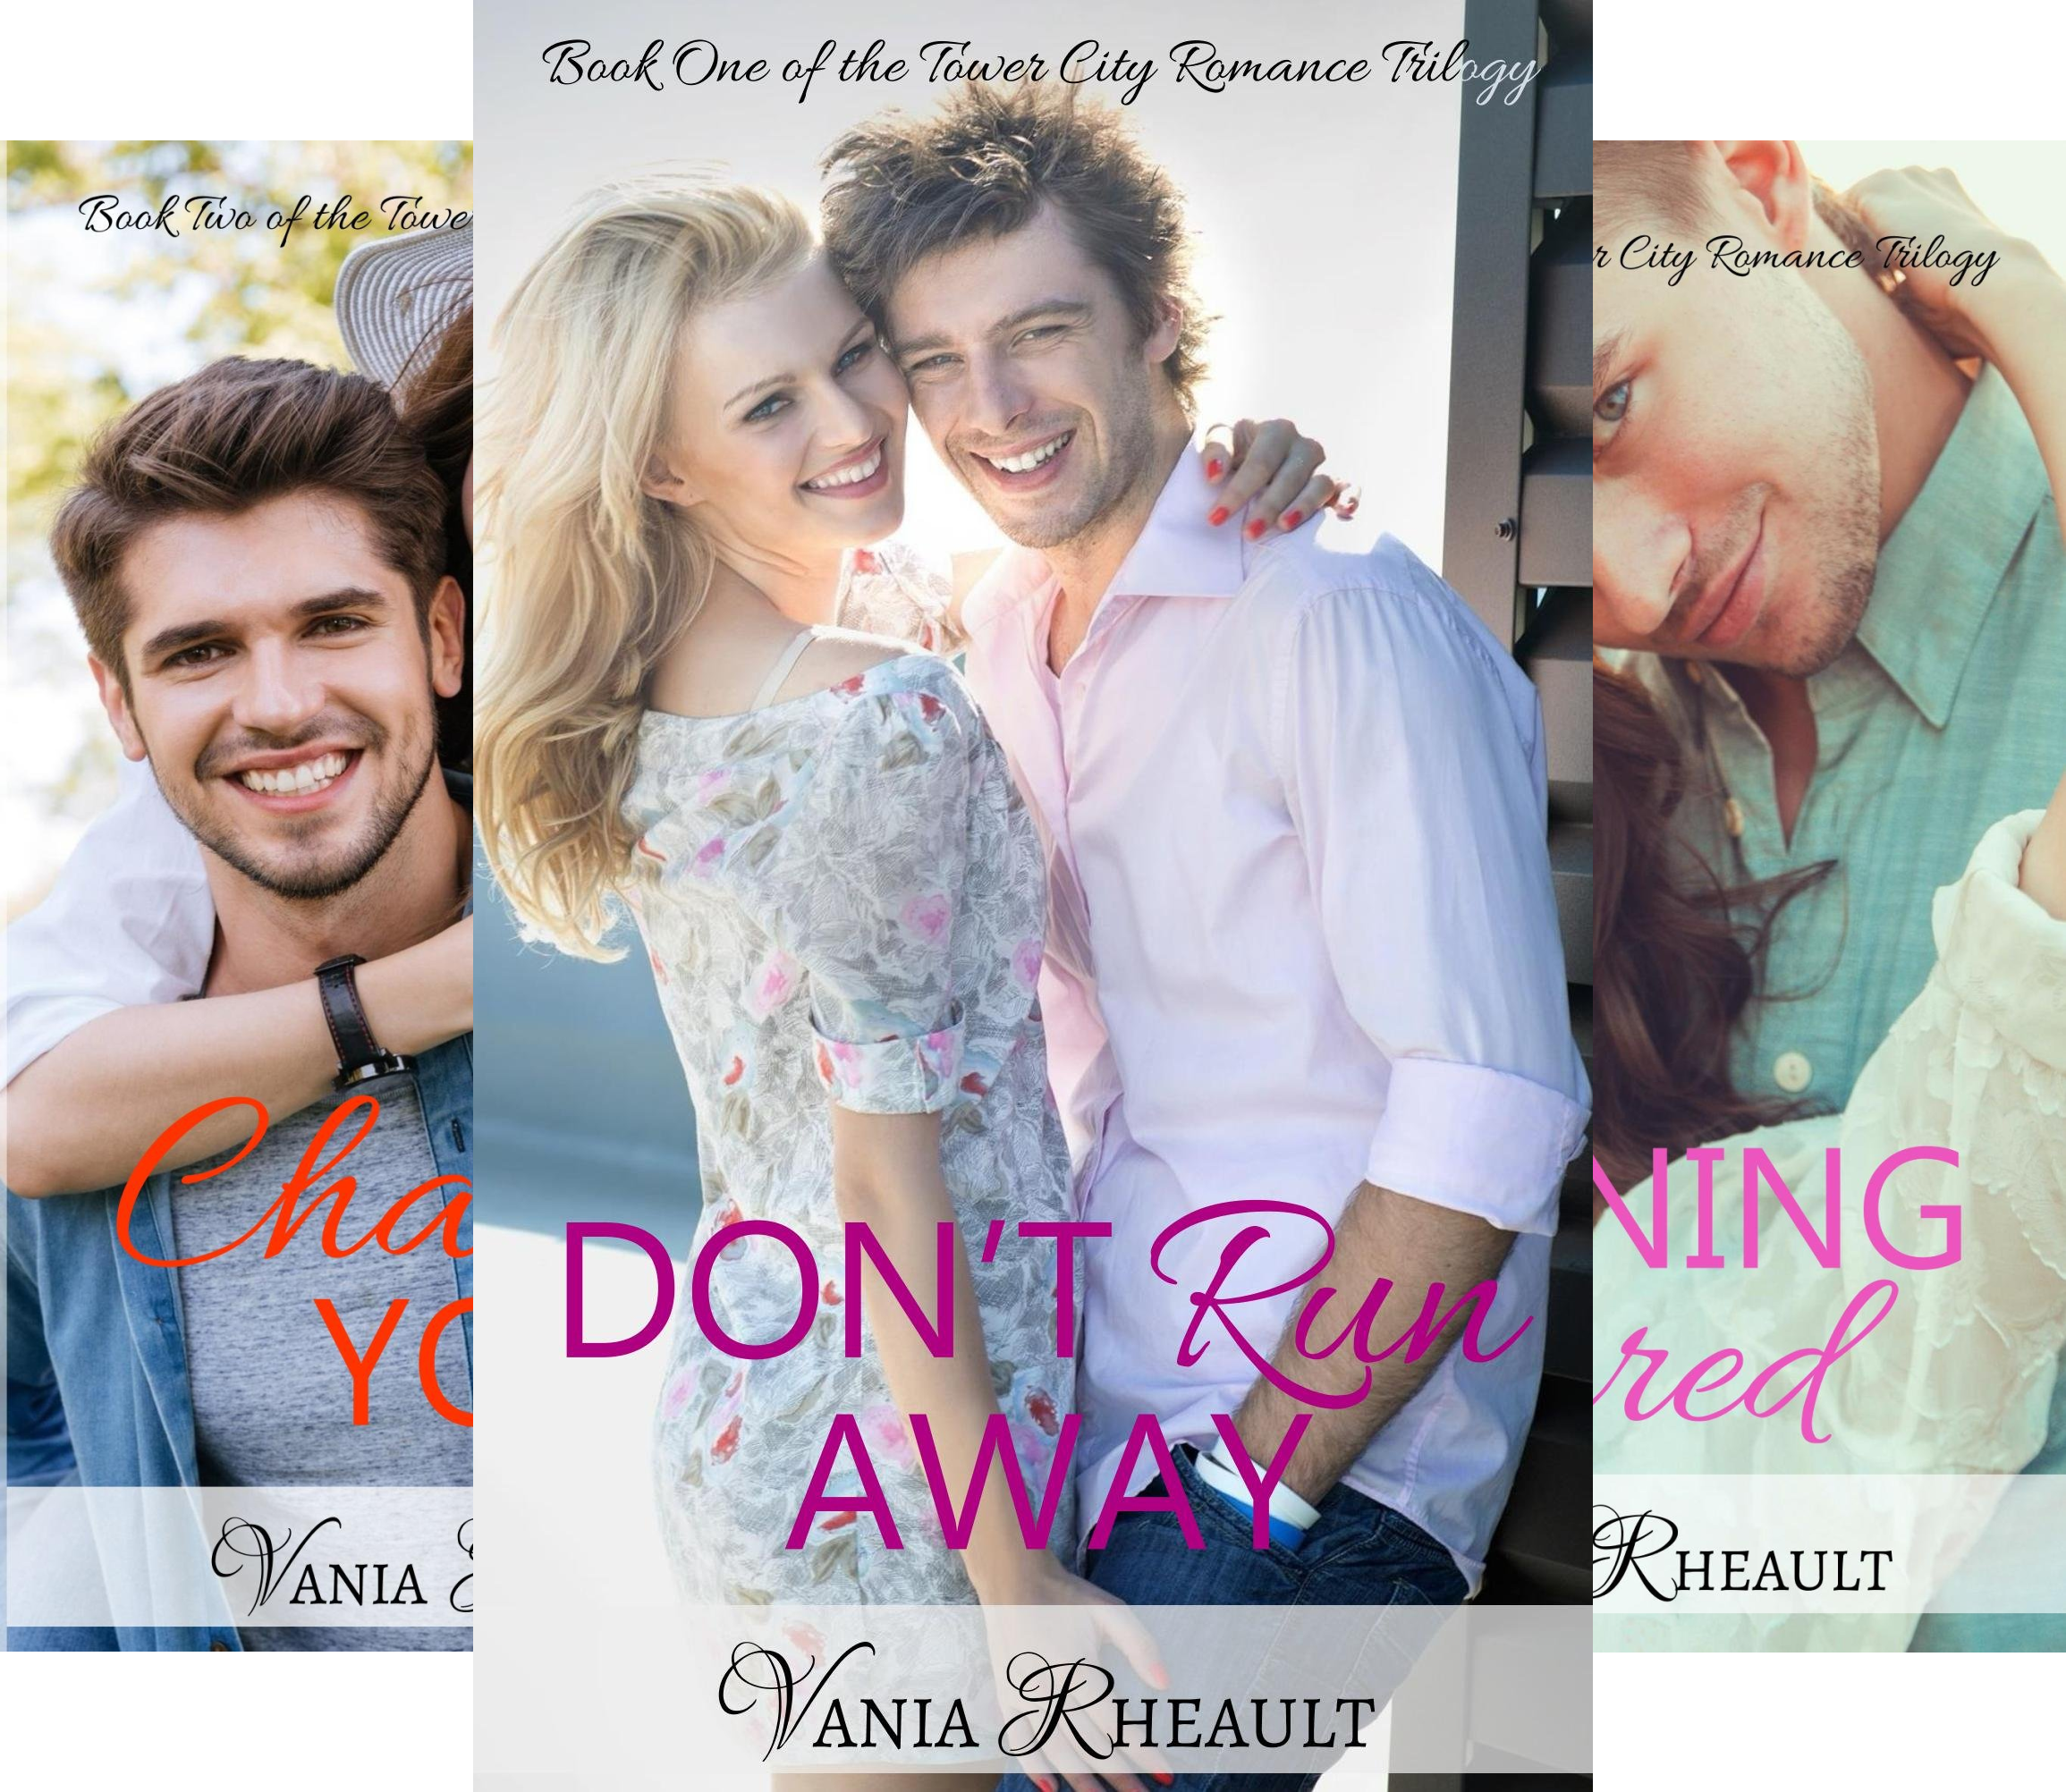 Tower City Romance Trilogy (3 Book Series)